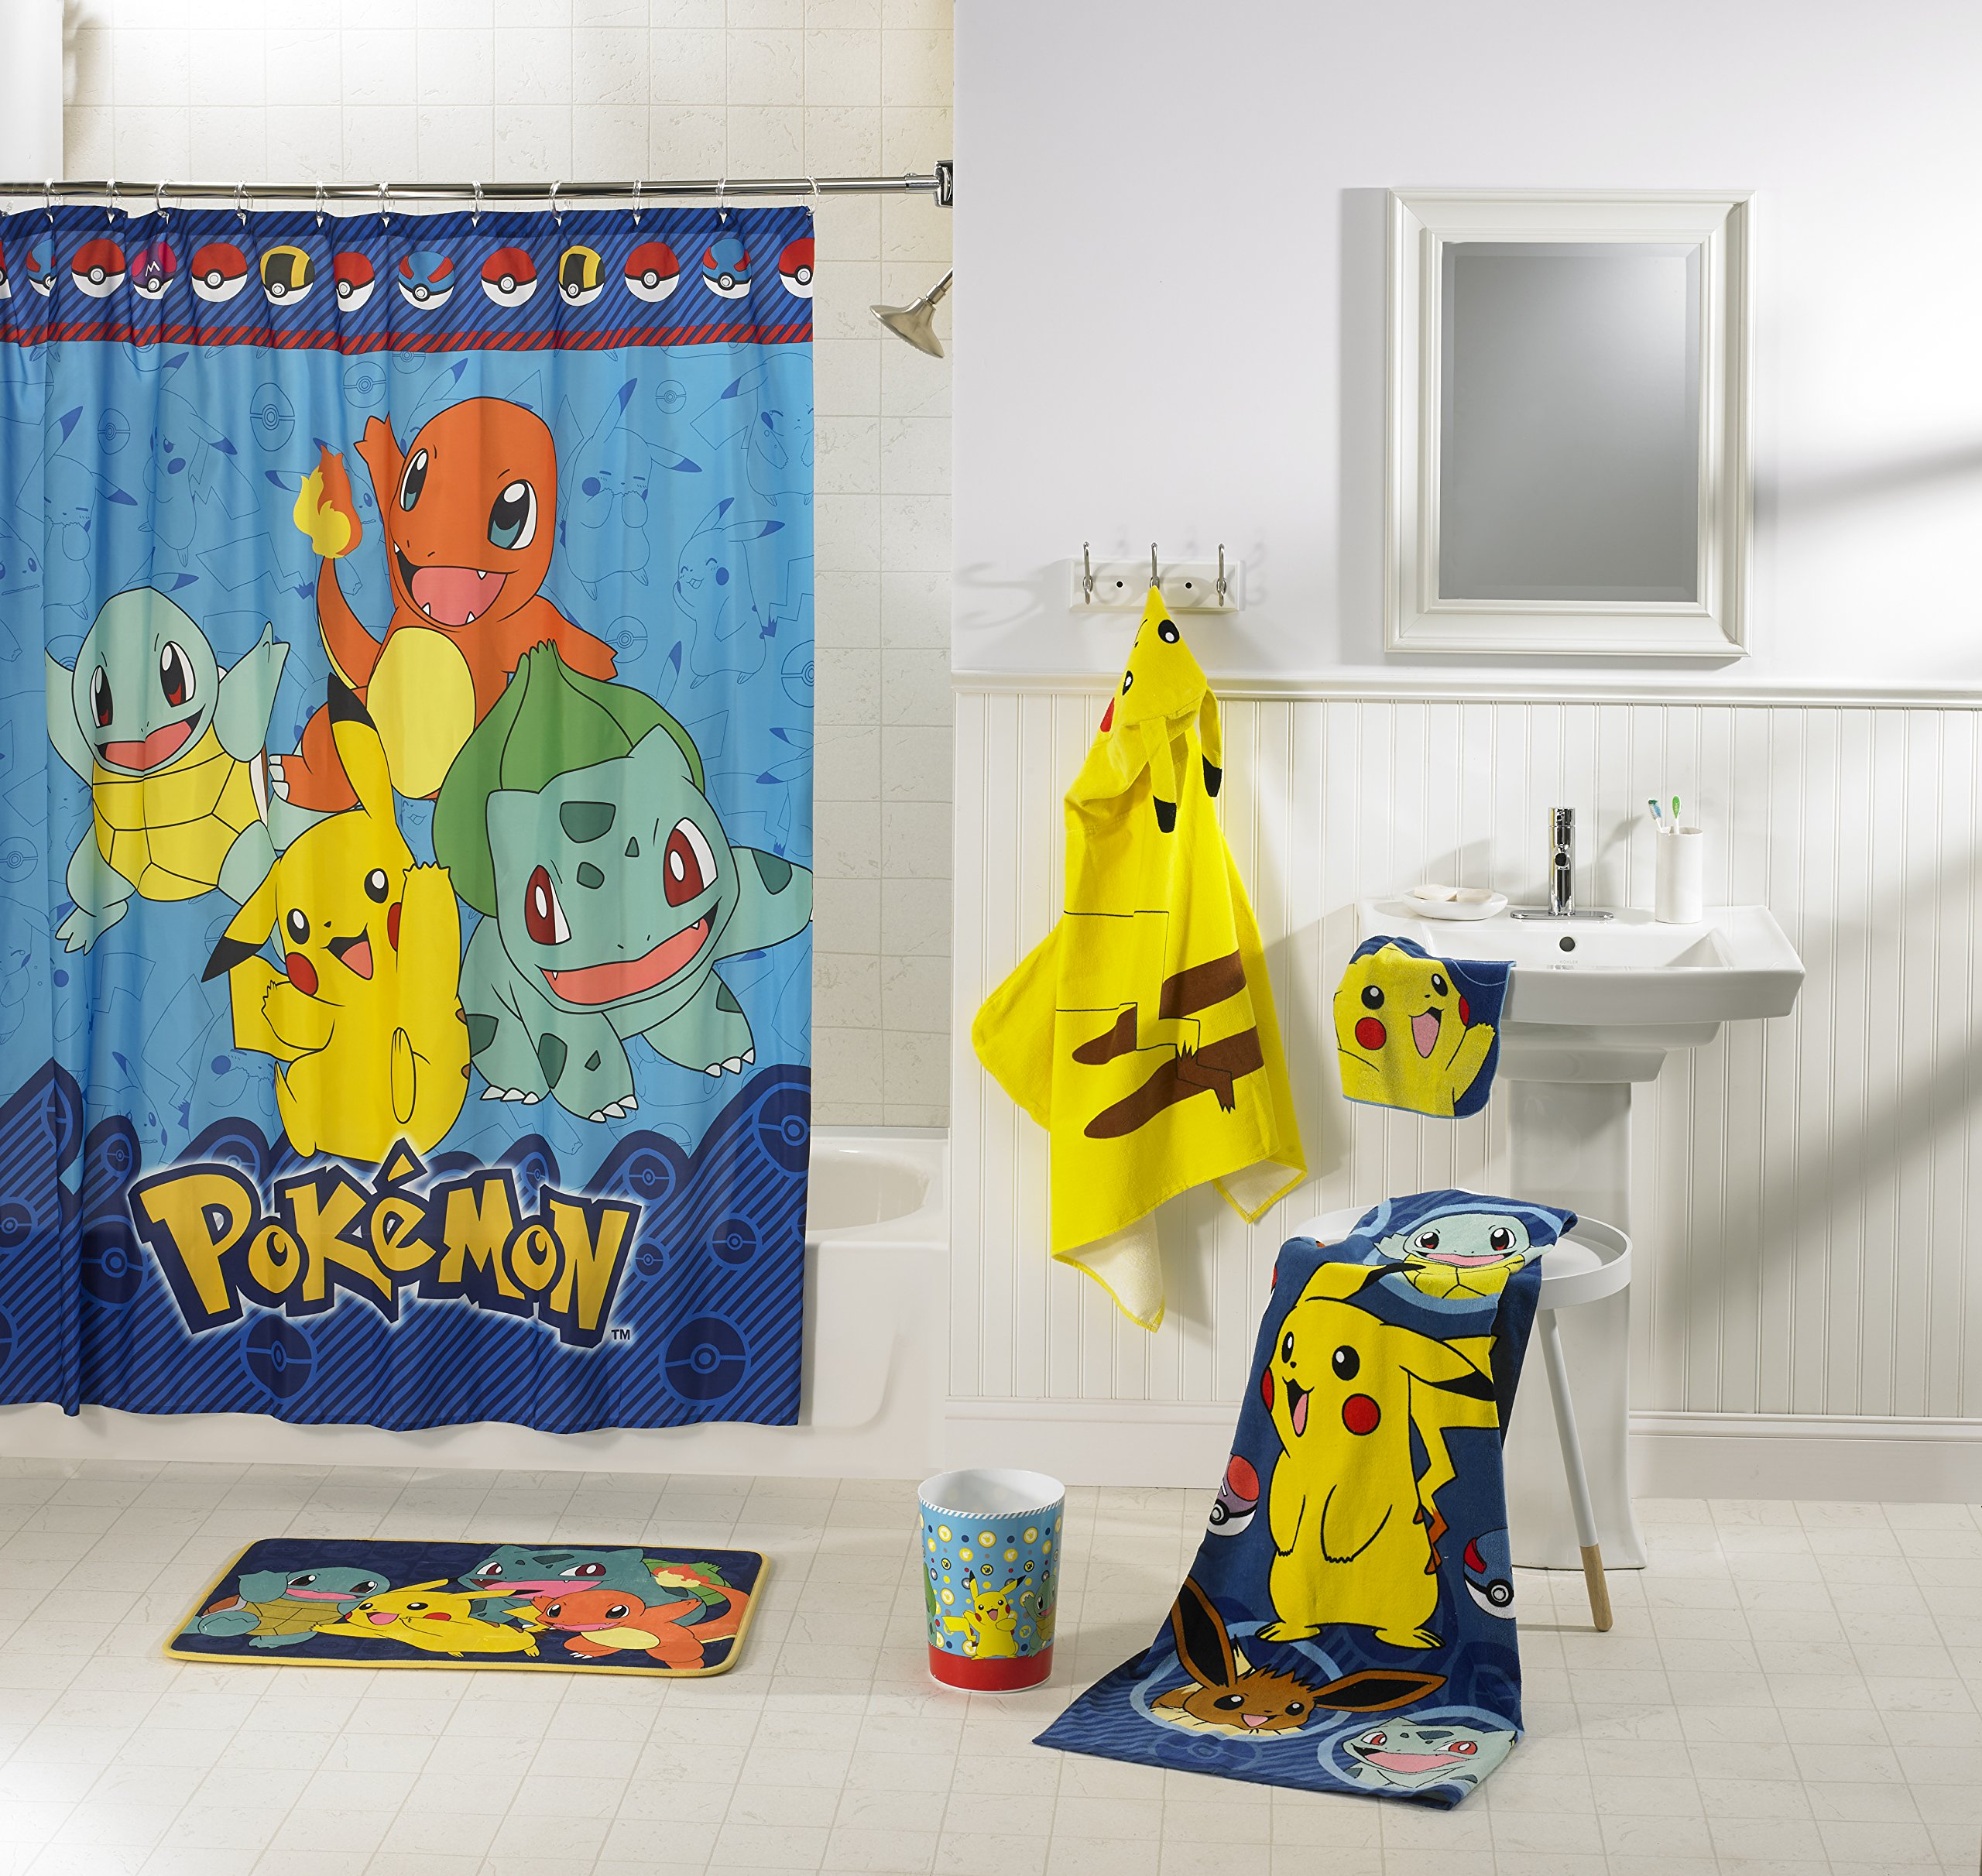 Charming and Lovable Pokemon Kids 5 Piece Bathroom in a Bag Set, Exclusive,Makes Bath Time Fun and Exciting,Makes a Great Gift for Kids and Fans